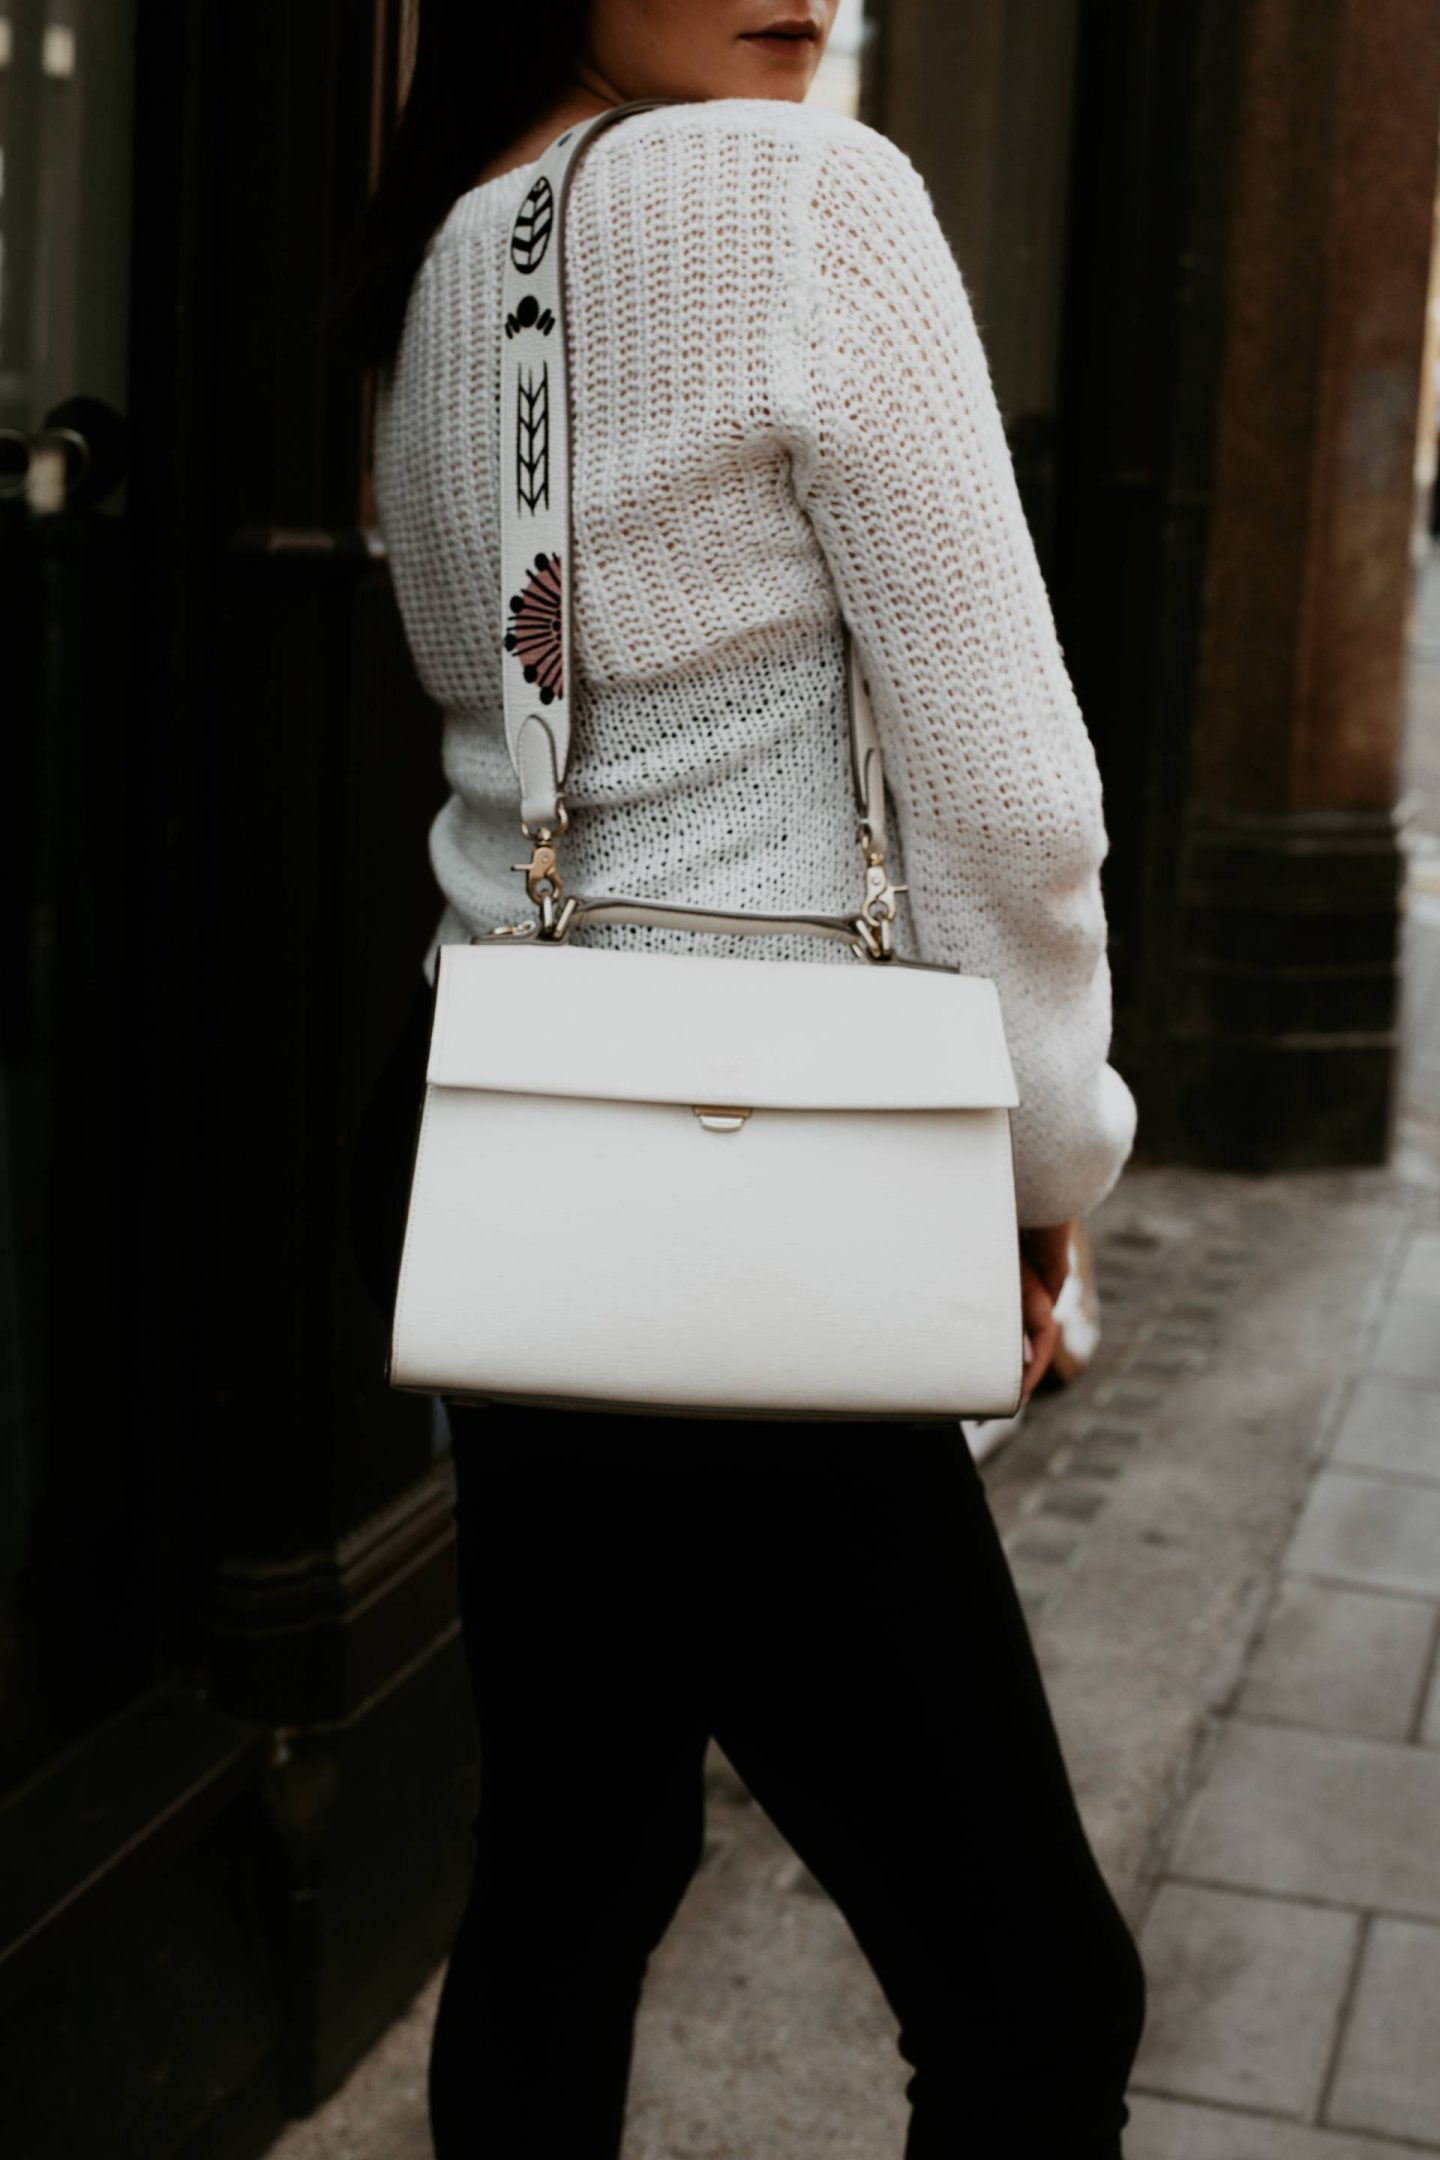 Radley structured white handbag